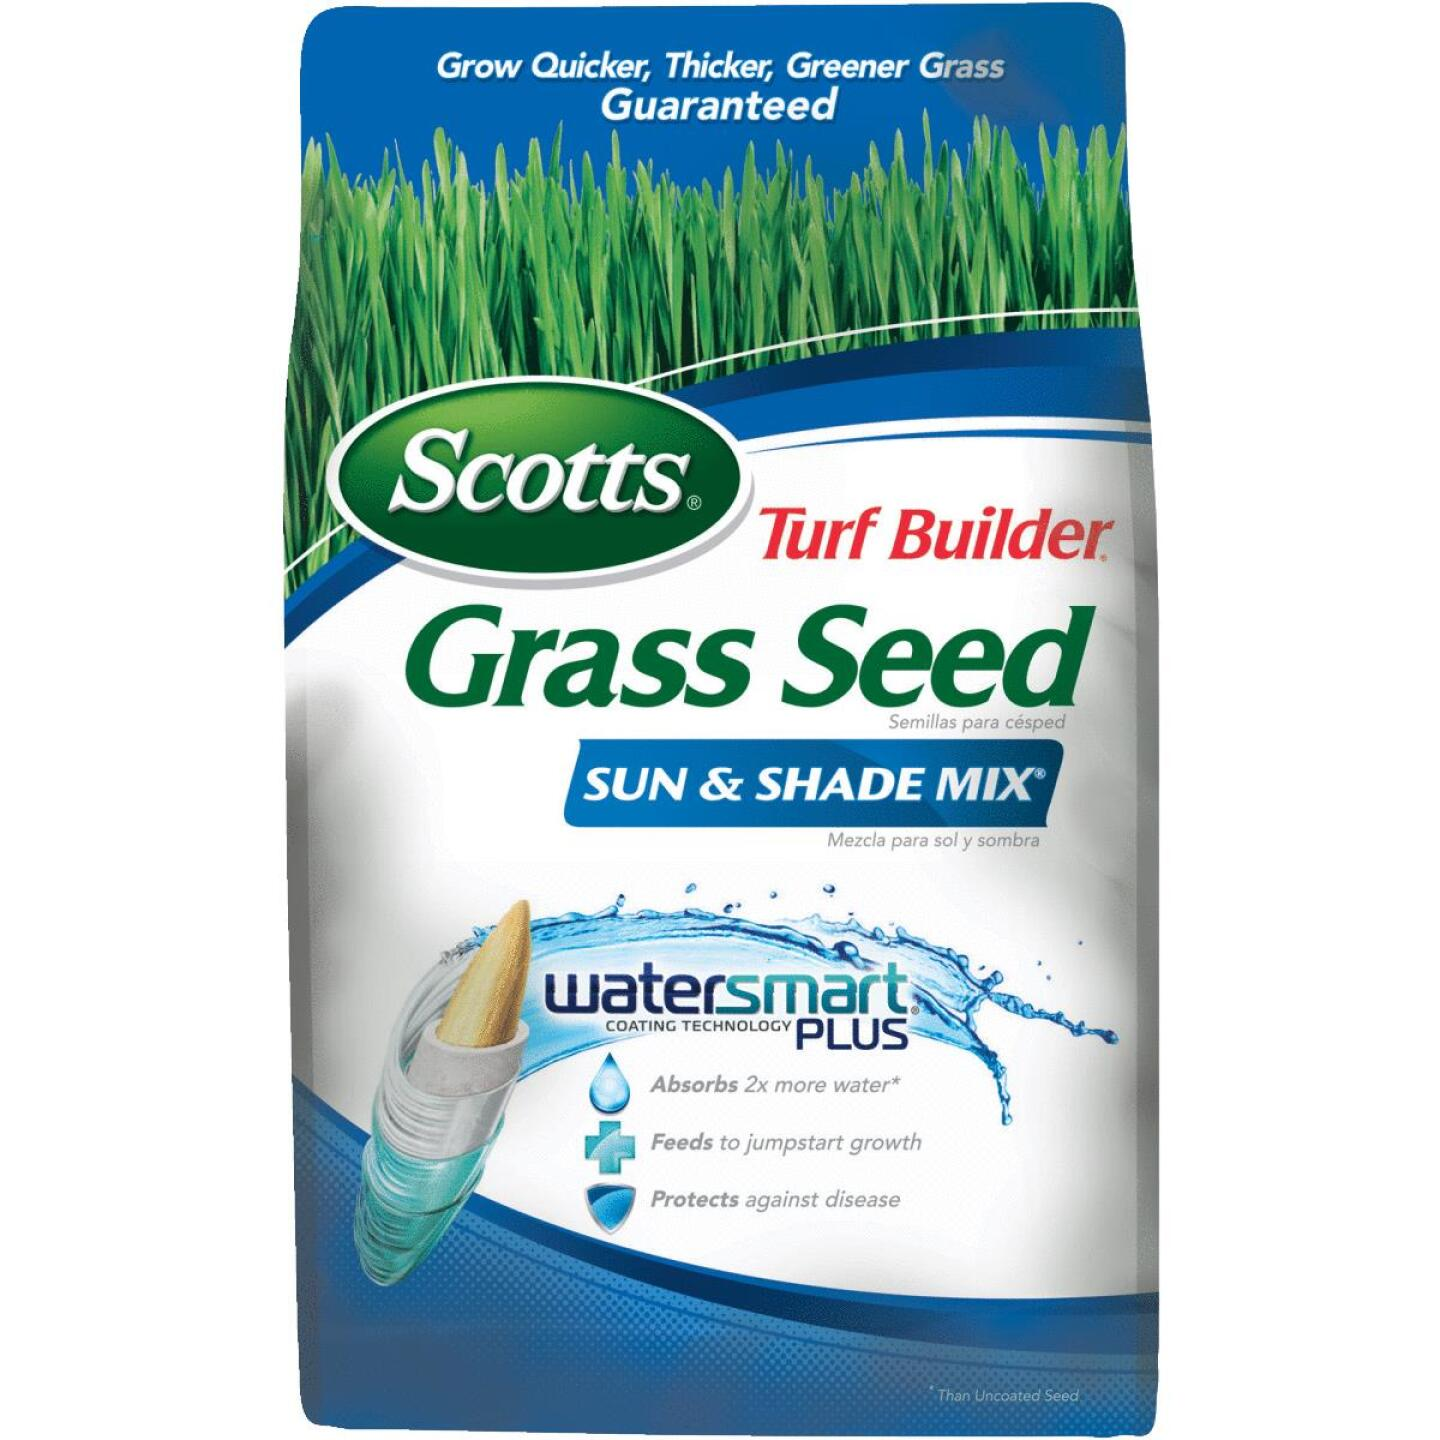 Scotts Turf Builder 7 Lb. Up To 2800 Sq. Ft. Coverage Sun & Shade Grass Seed Image 1